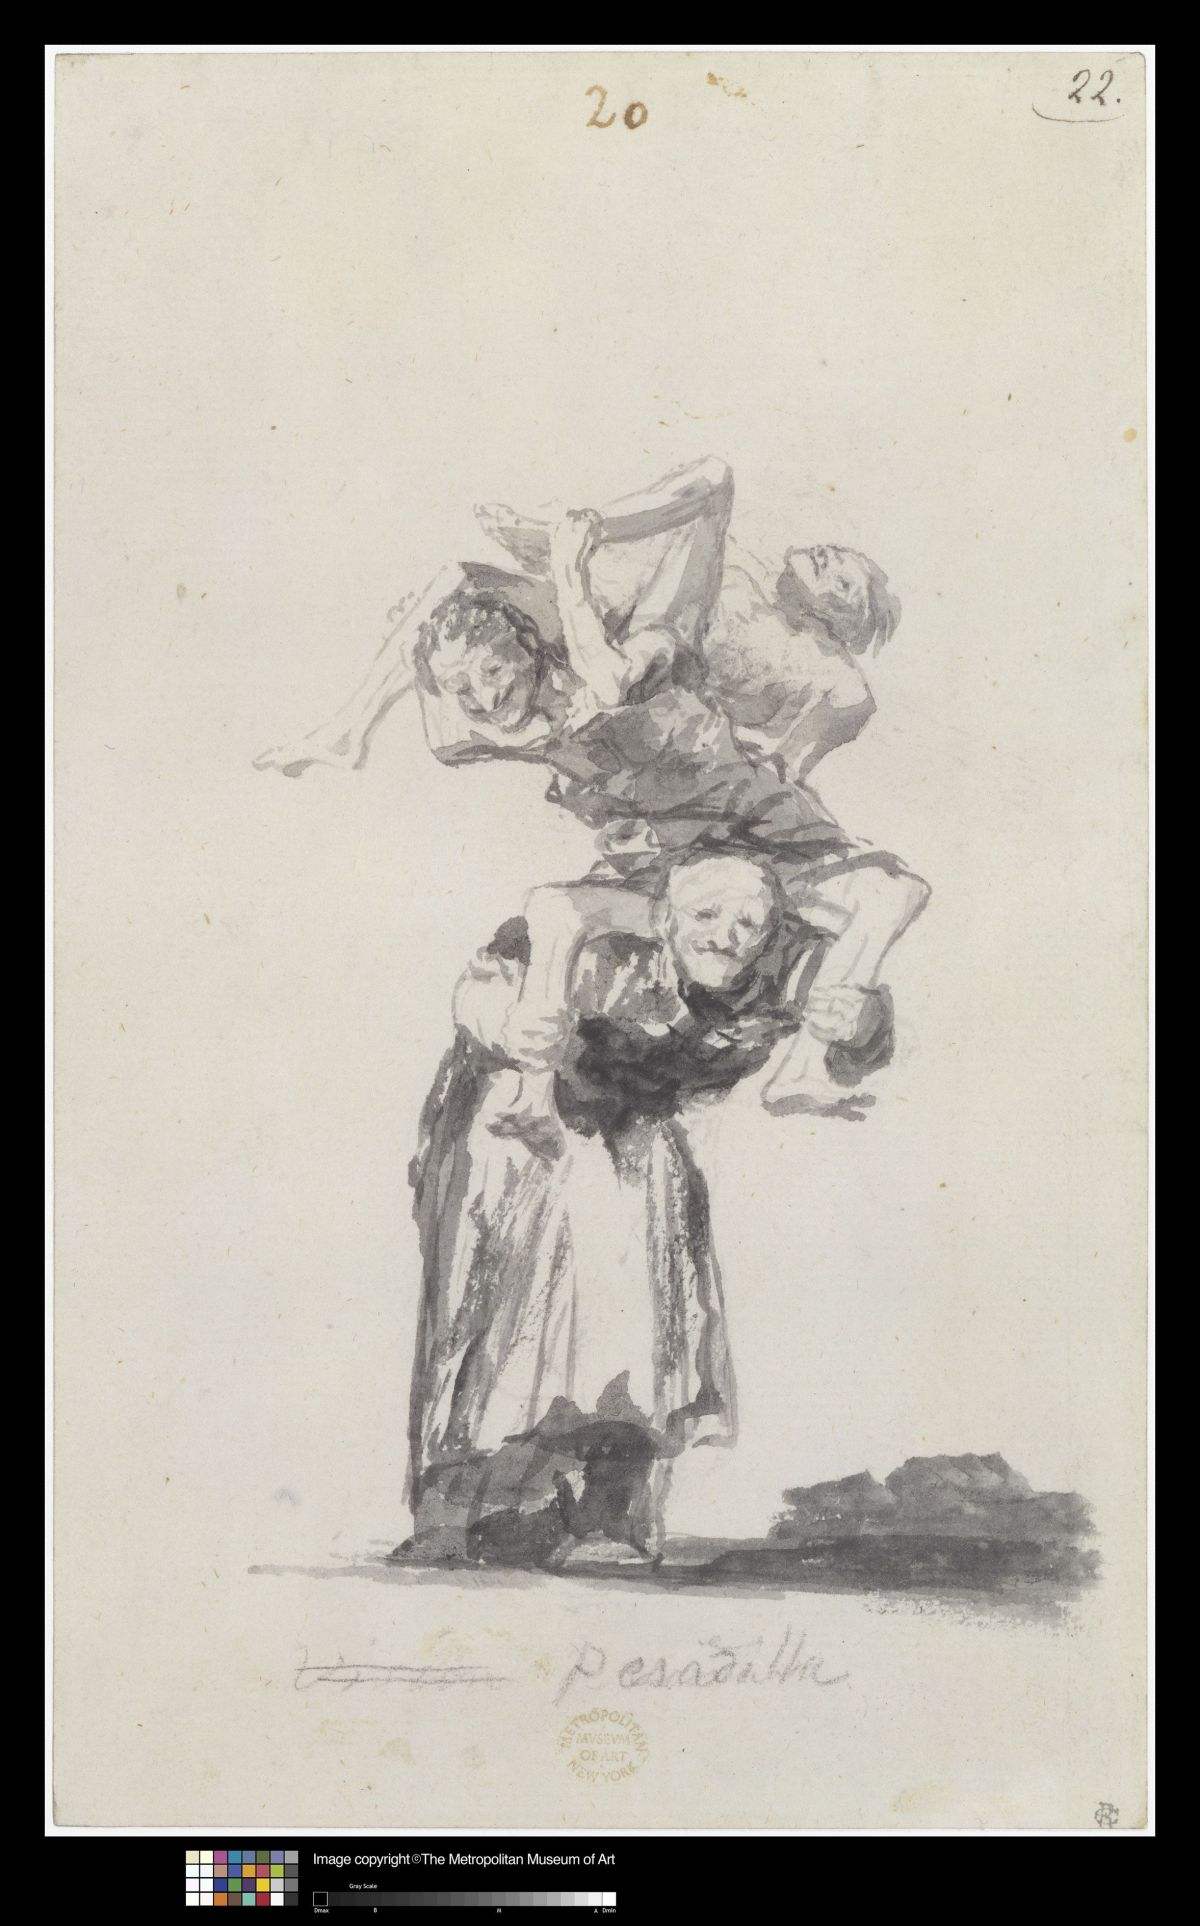 Photogallery: Goya: The Witches and Old Women